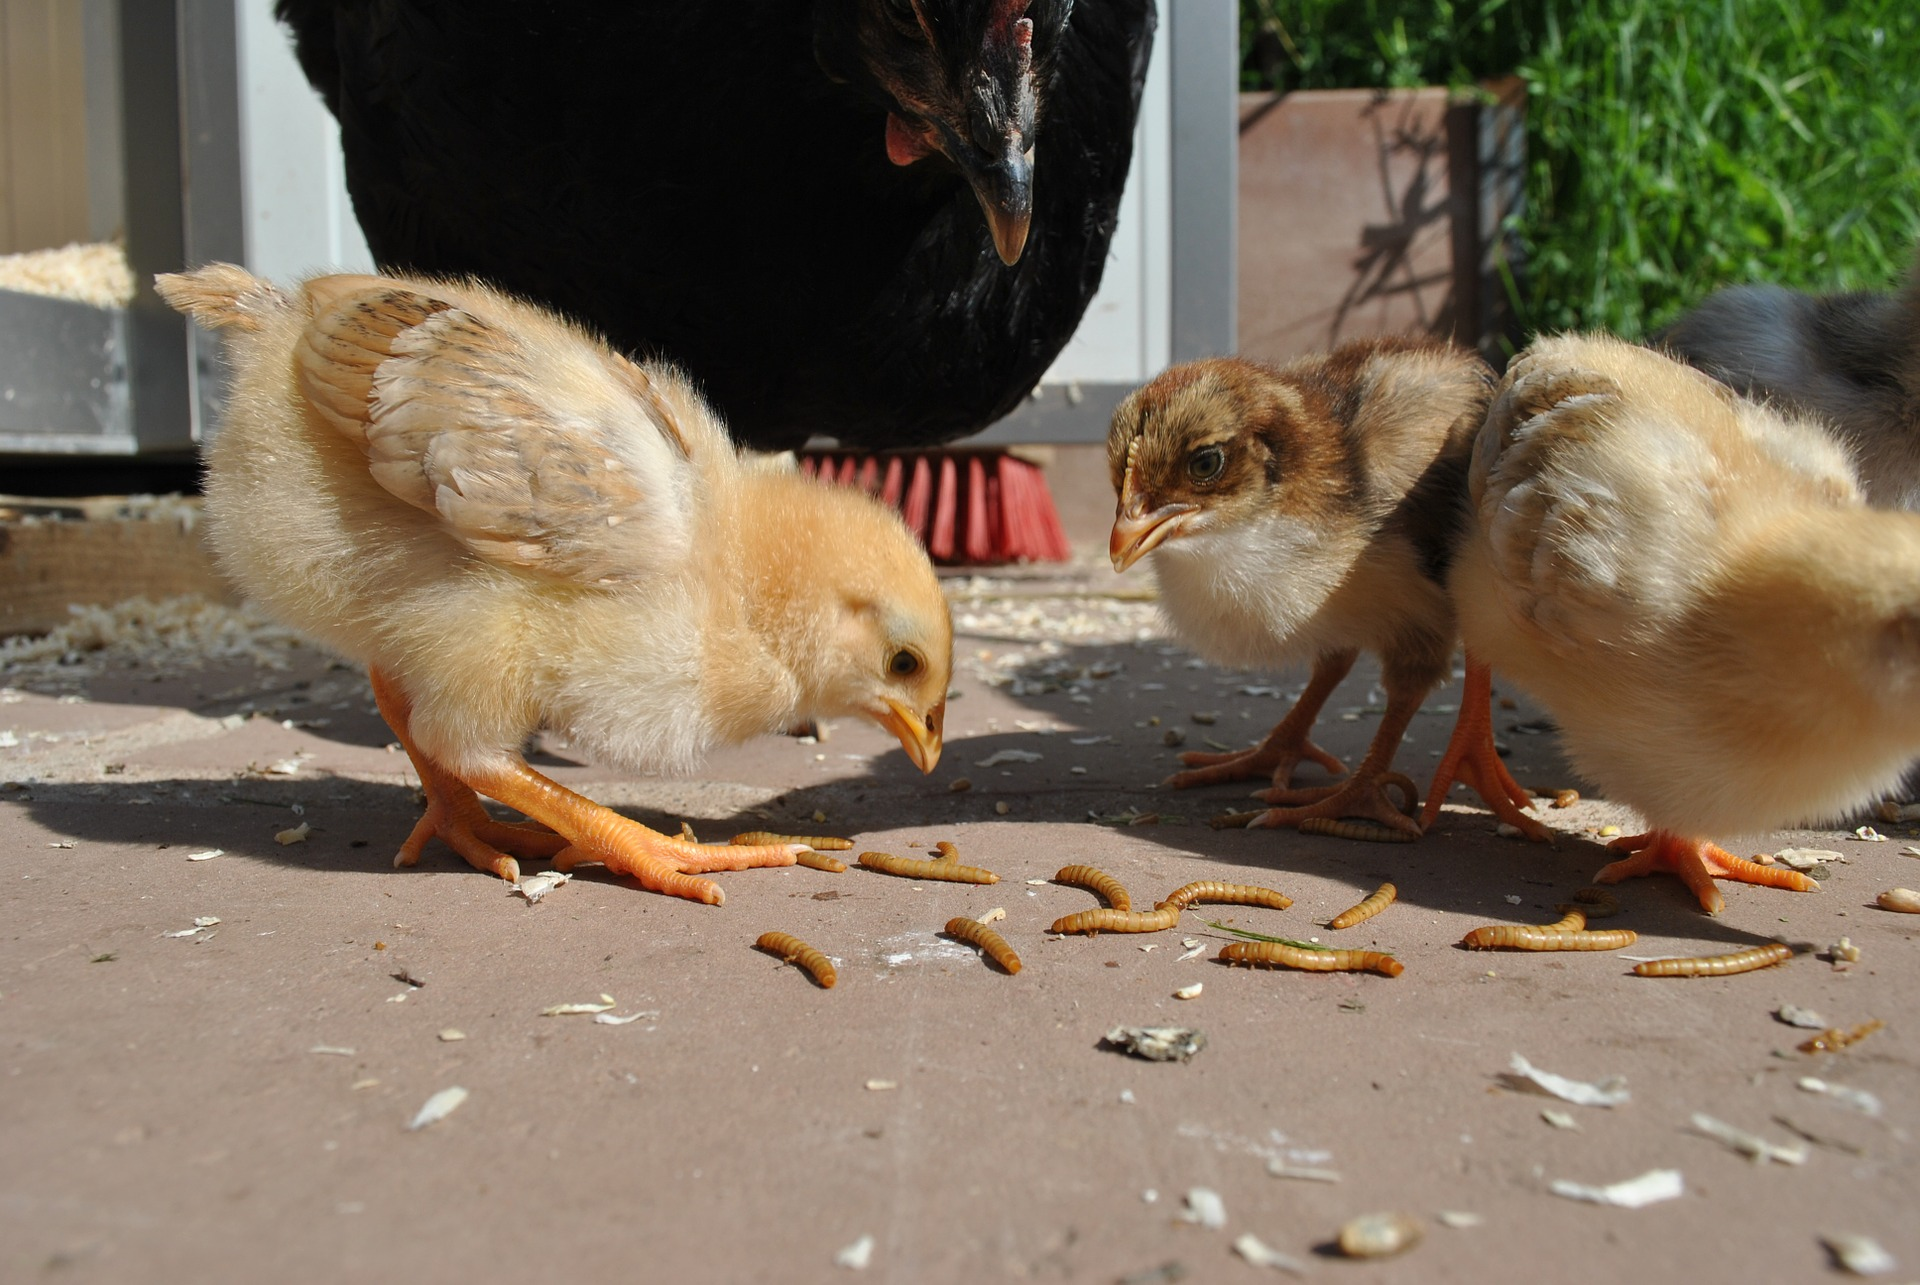 Raising Mealworms for the Birds